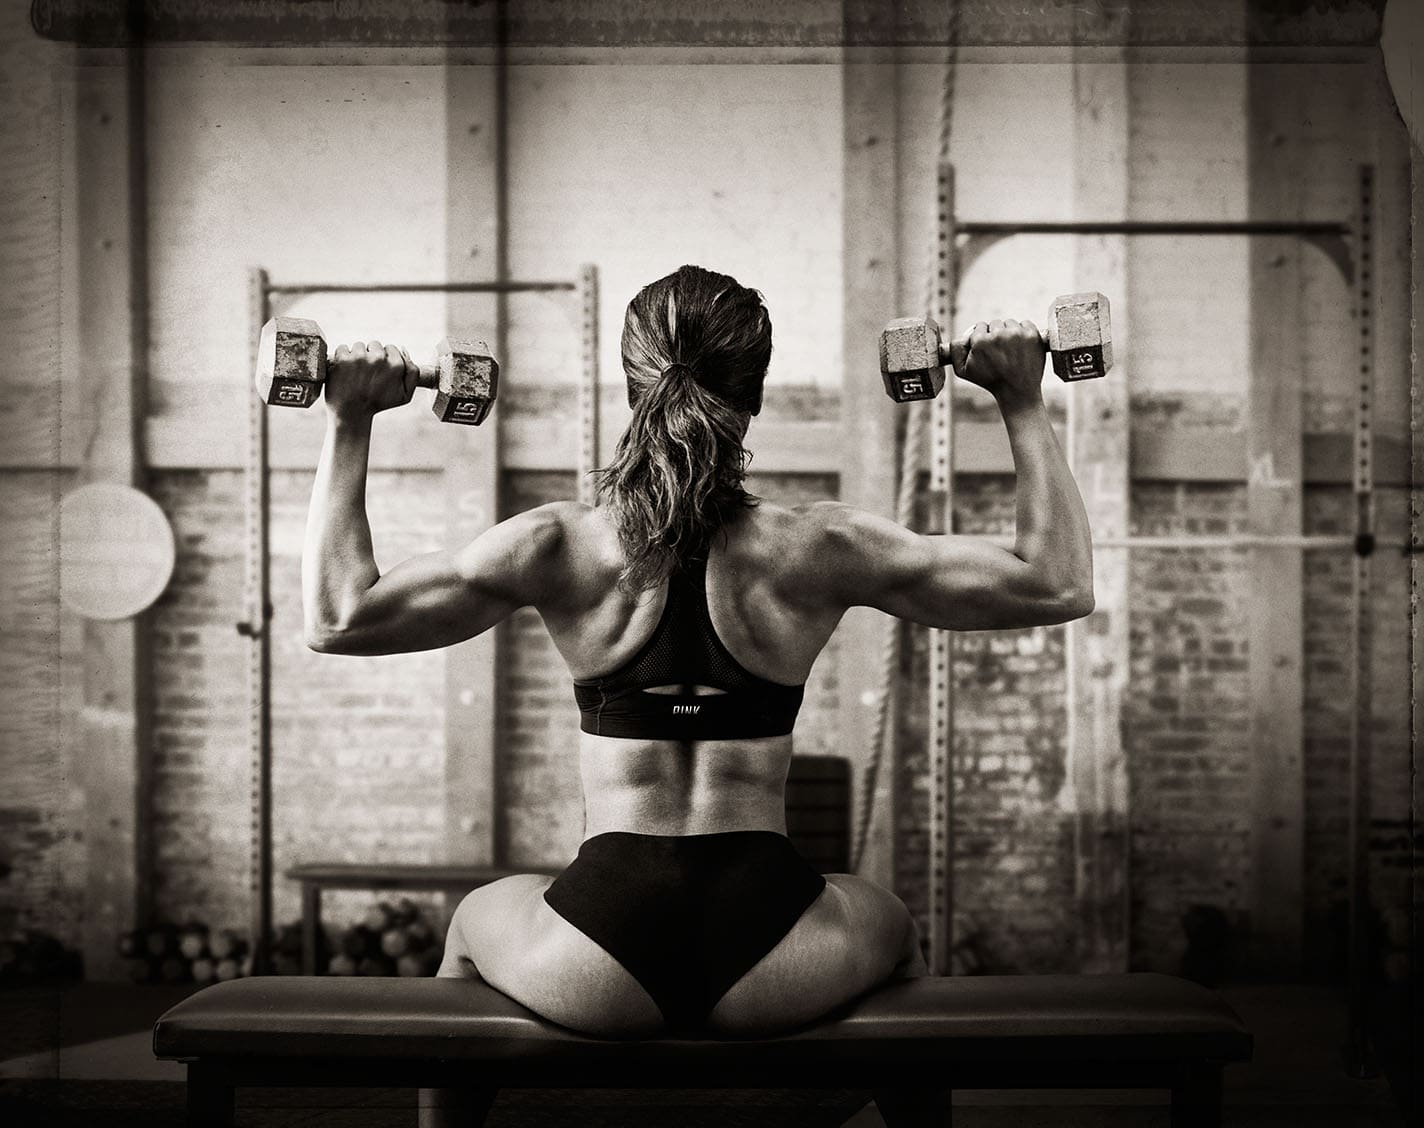 Black and White Image Behind Athlete Nicole Harris Doing Shoulder Press Two Piece Workout Apparel Chanel